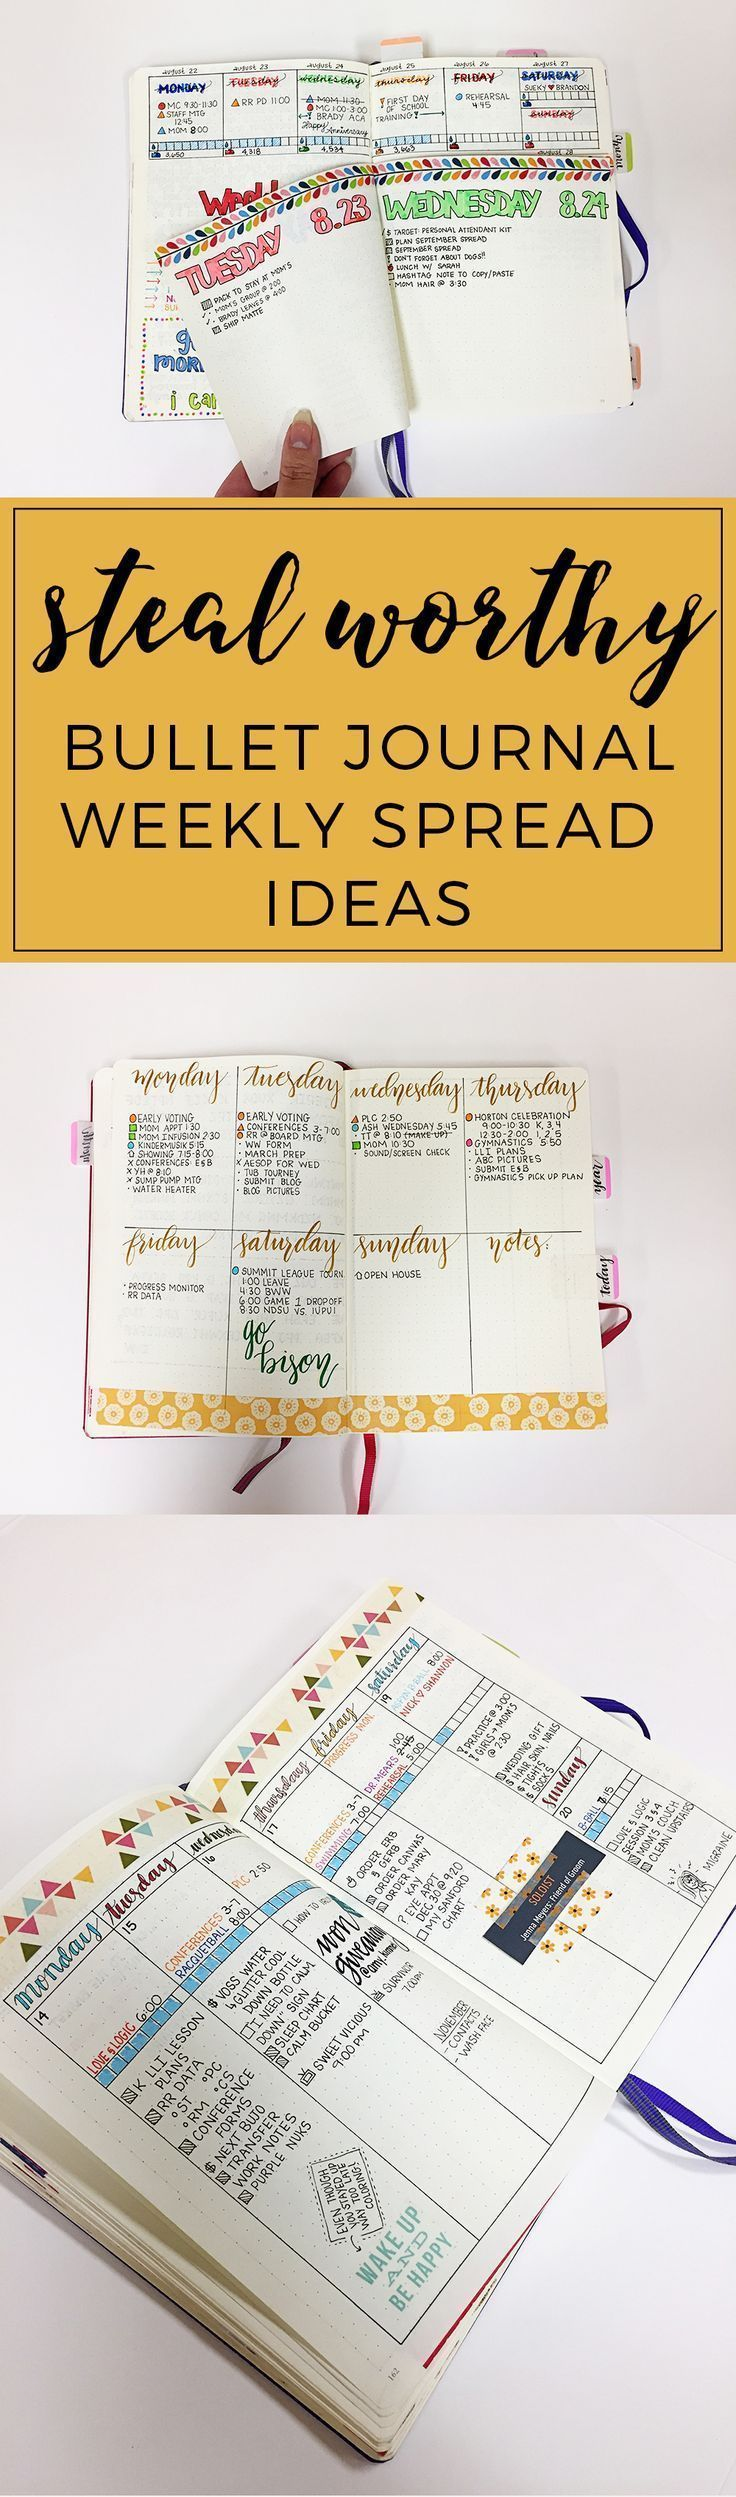 Steal-worthy Bullet Journal Weekly Spread Ideas http://productiveandpretty.com/bullet-journal-weekly-spread-ideas/?utm_campaign=coschedule&utm_source=pinterest&utm_medium=Jen + Liz | Productive and Pretty&utm_content=Steal-worthy Bullet%